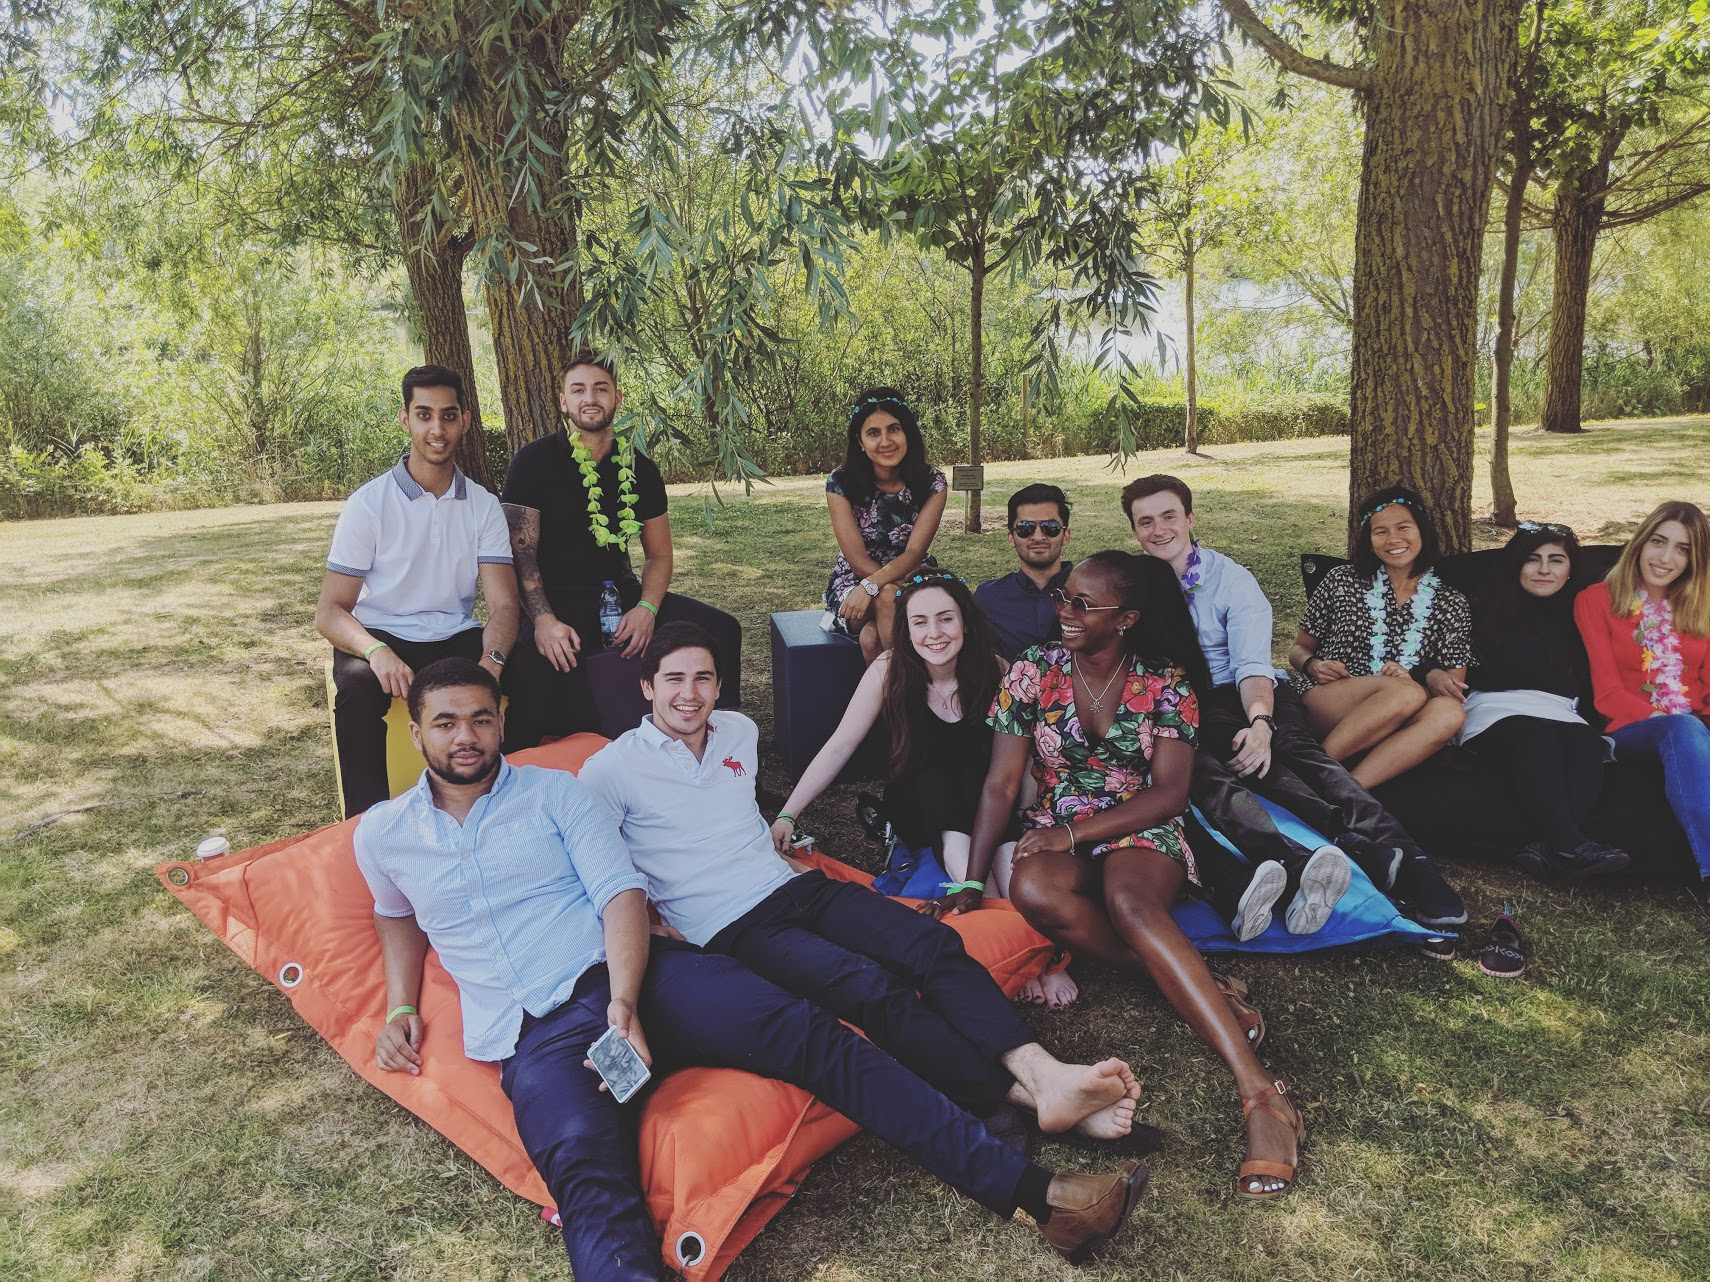 Summer internship cohort - only possible because of the skills developed during my placement year